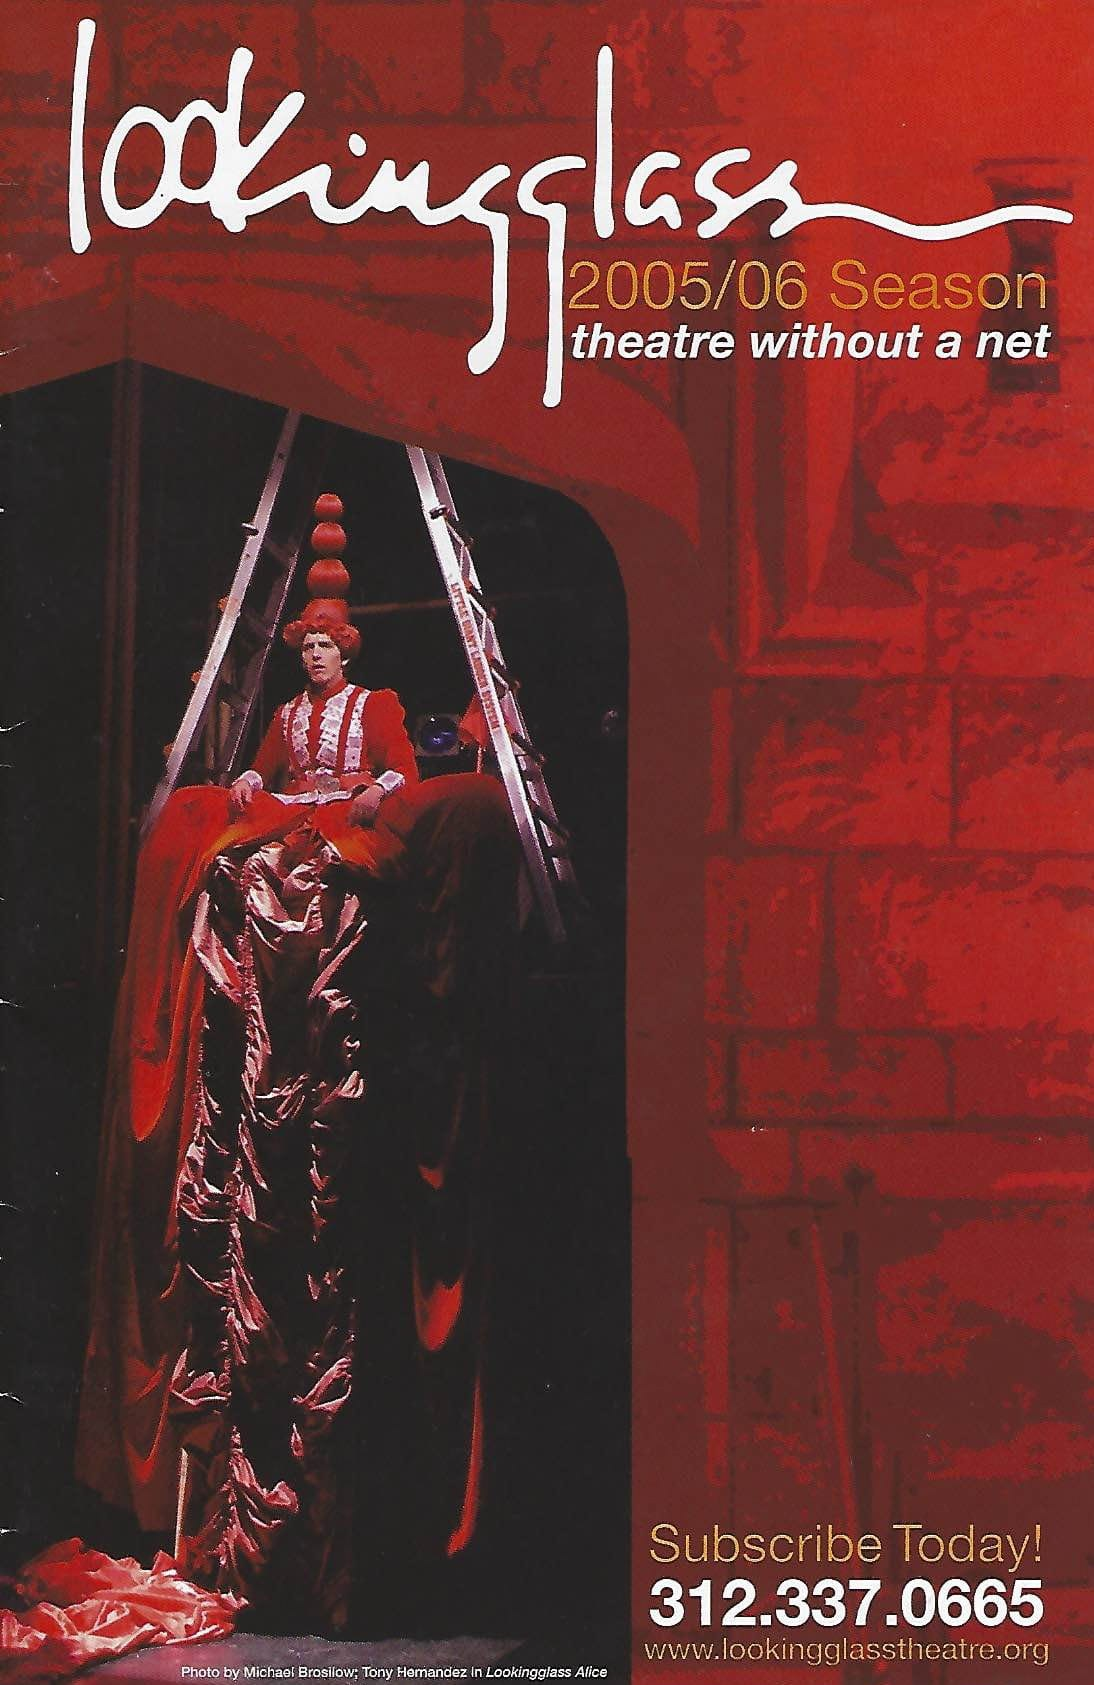 Brochure for 2005-2006 season at Lookingglass Theatre. Image courtesy of Roell Schmidt.